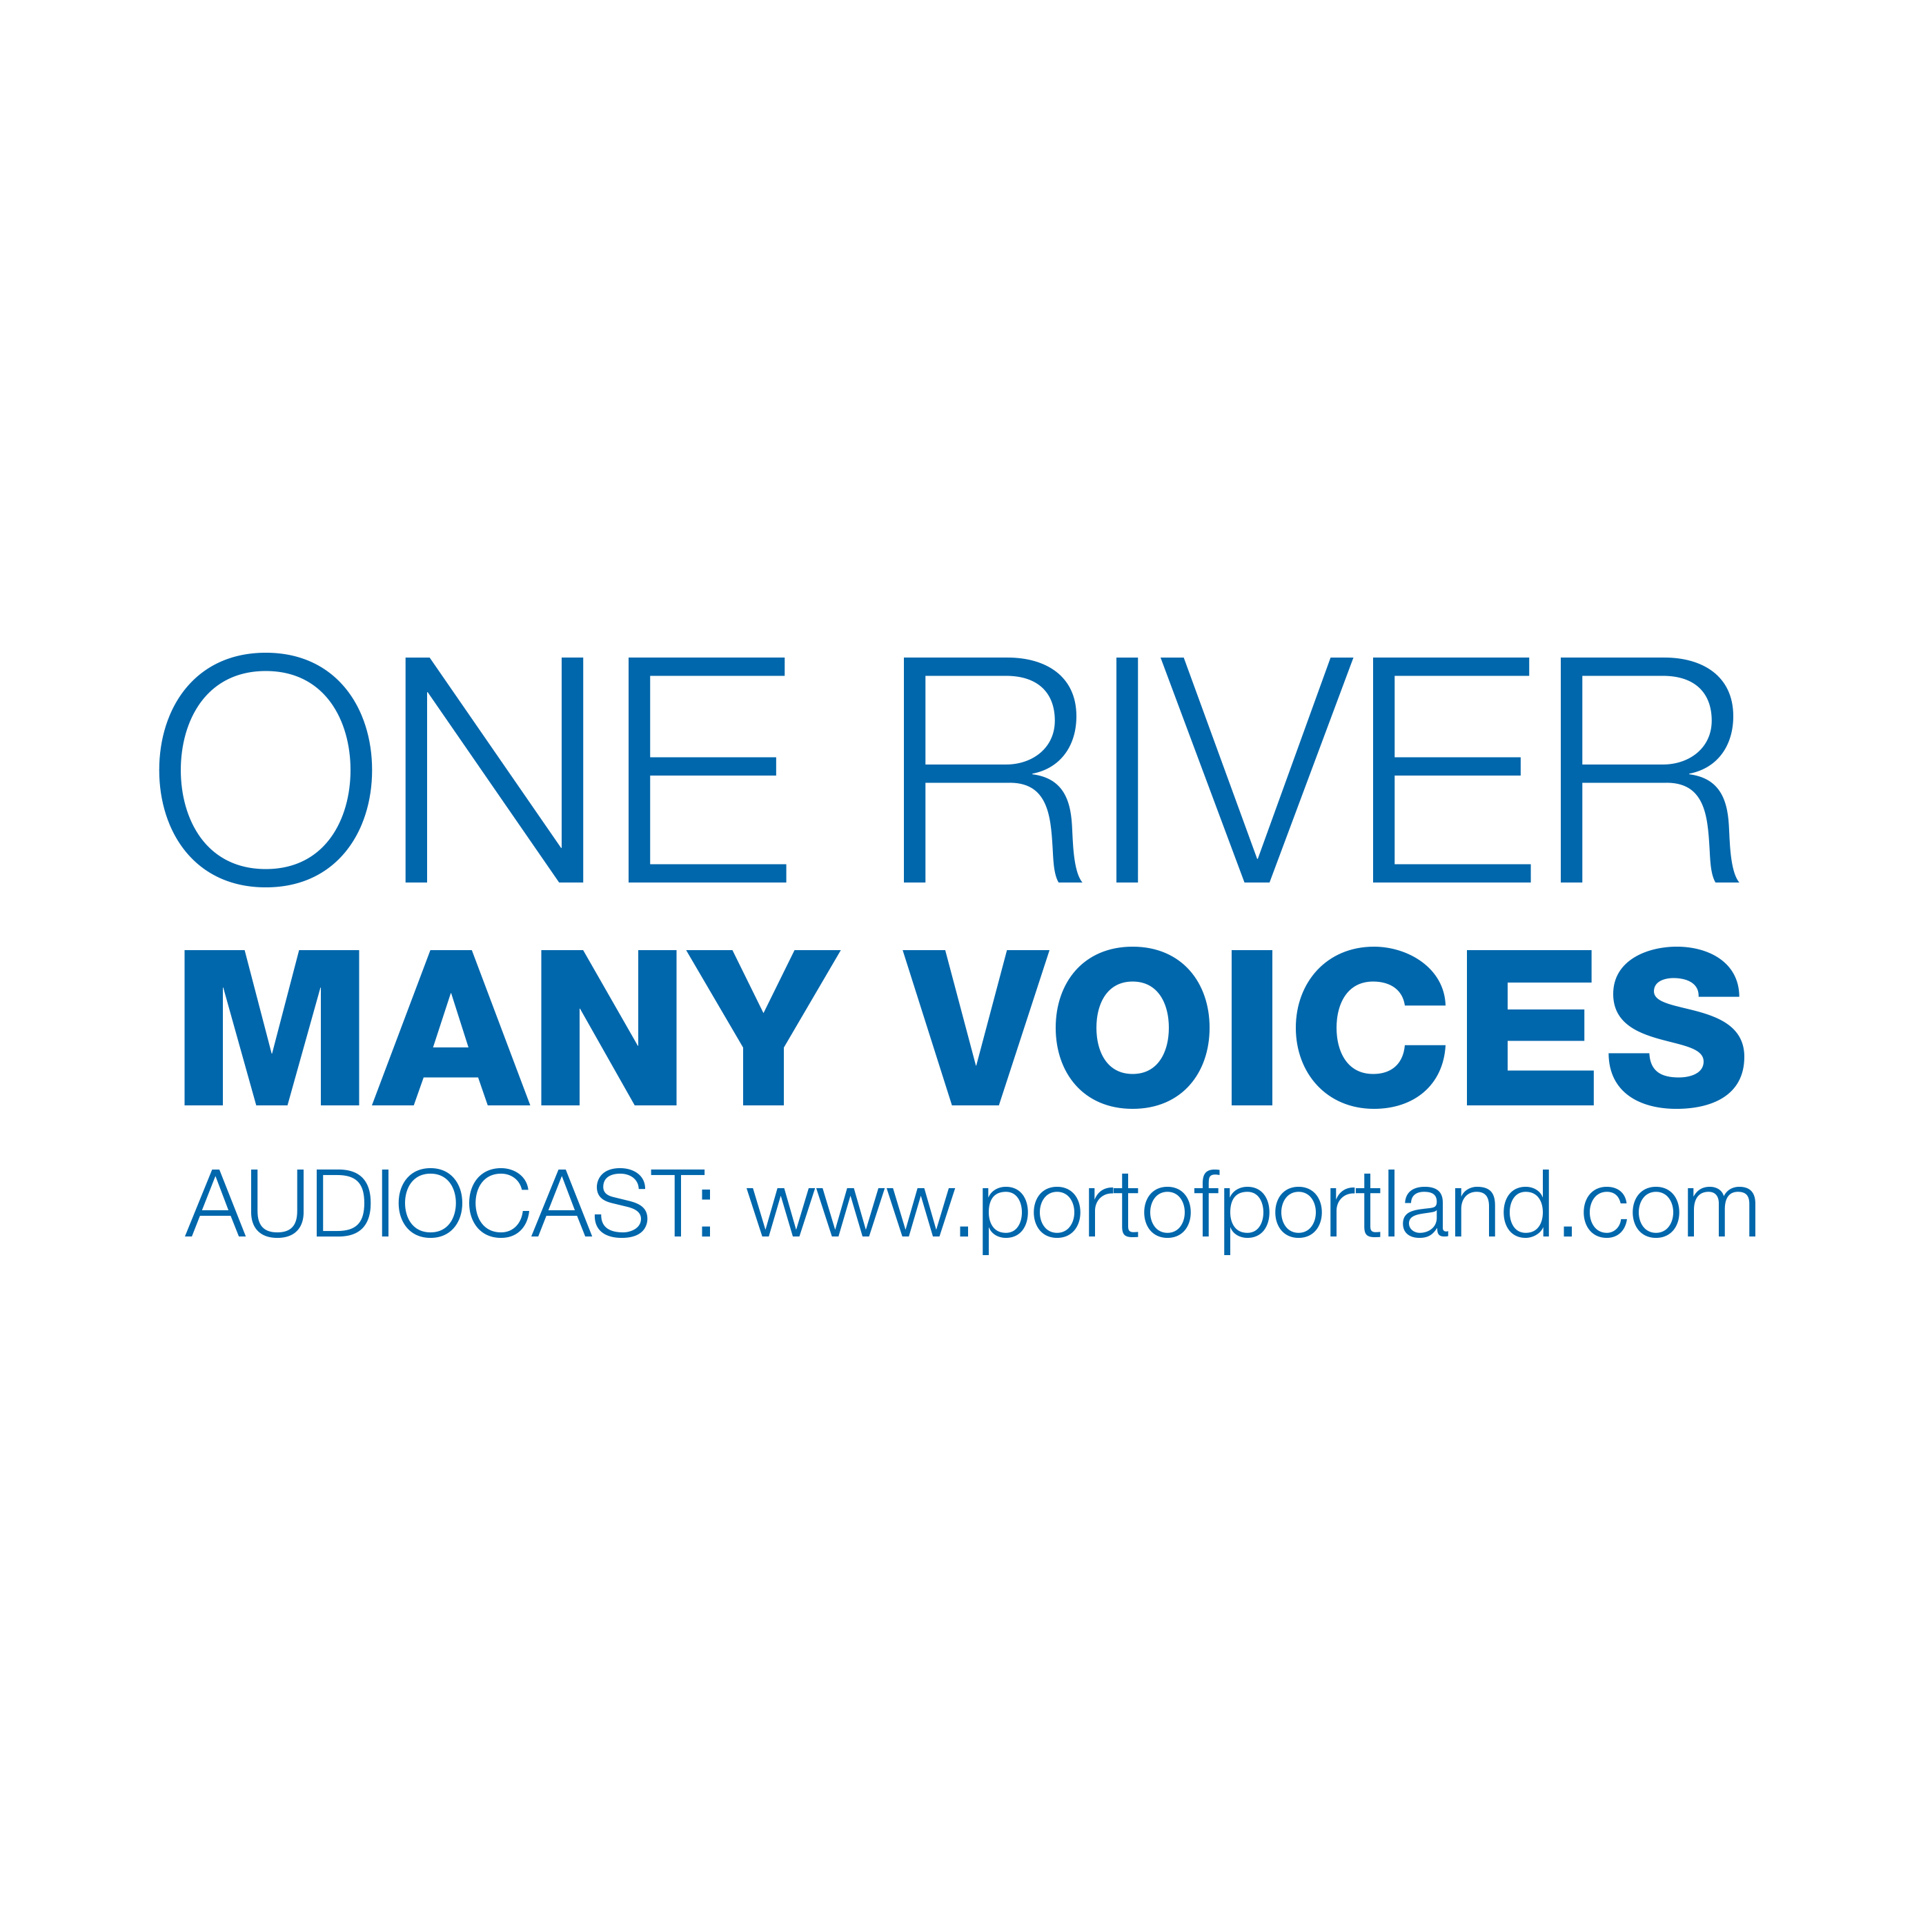 One River Many Voices